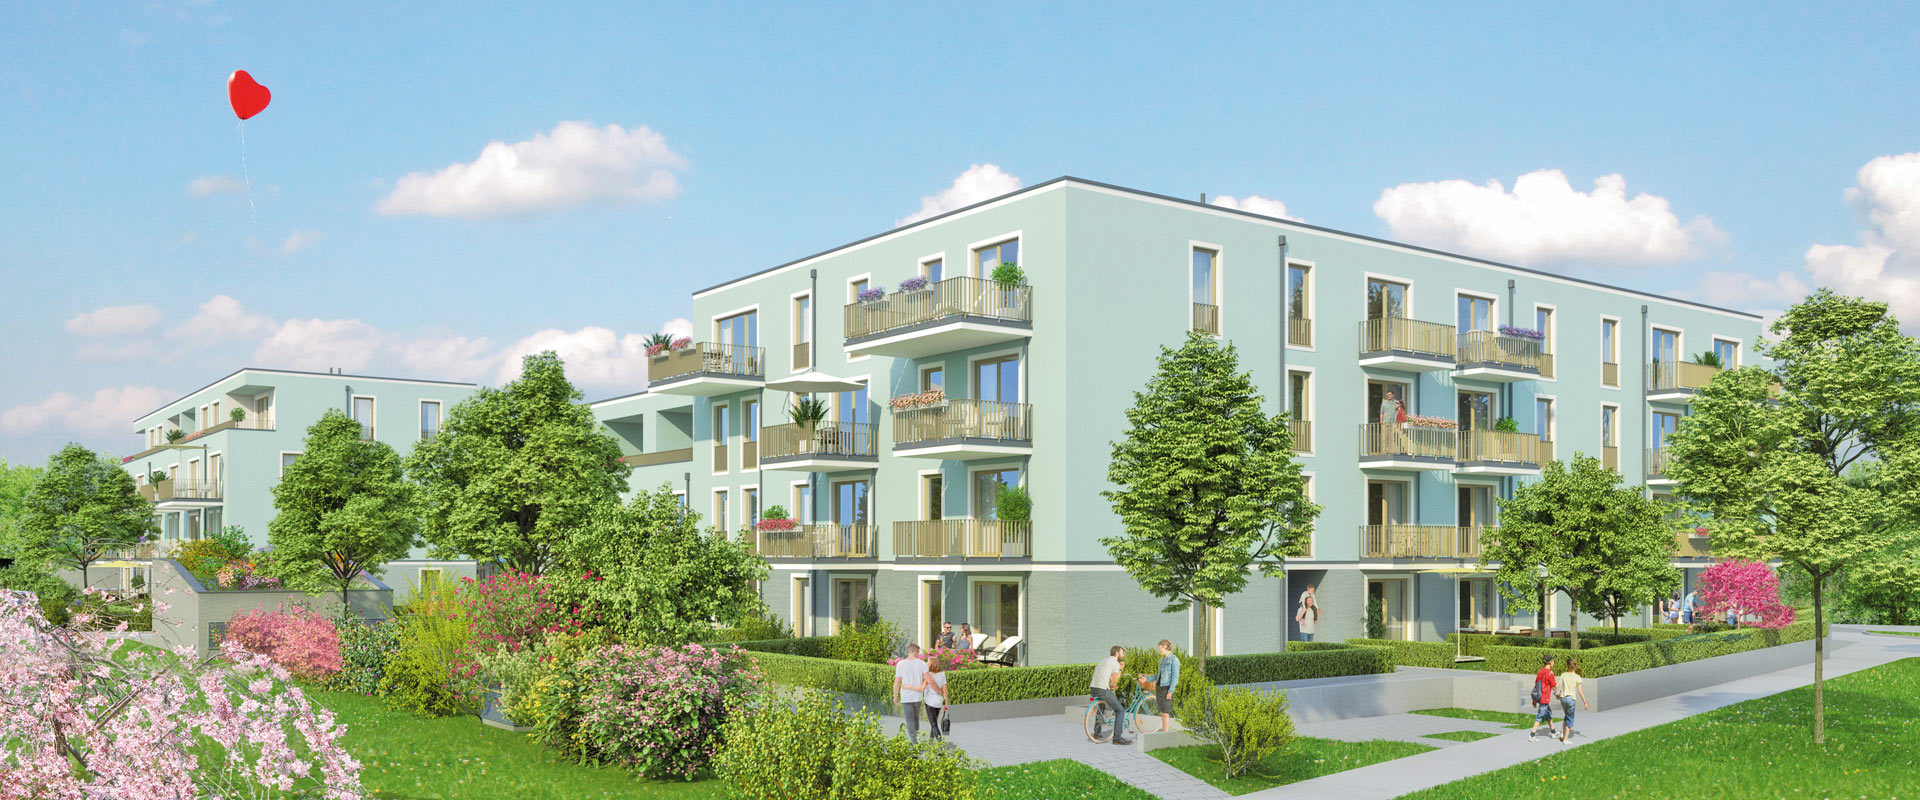 Building project Moosburg an der Isar